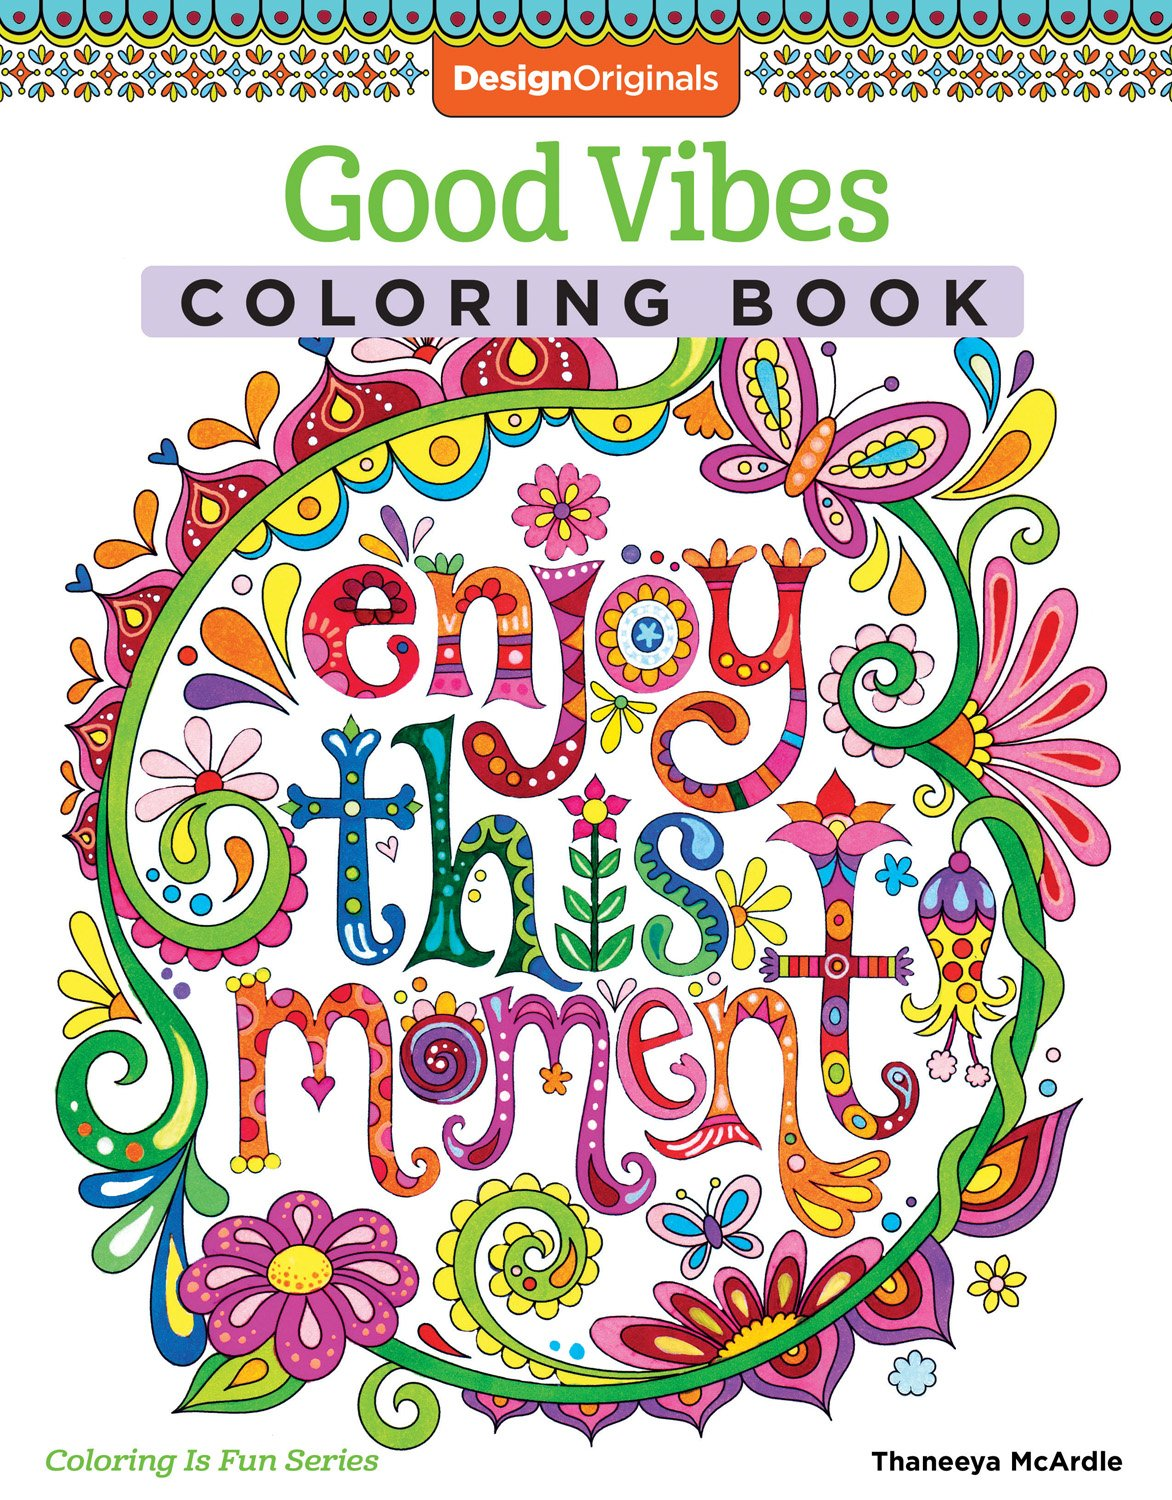 Good Vibes Coloring Book (Coloring is Fun) (Design Originals): 30 Beginner-Friendly & Relaxing Creative Art Activities…